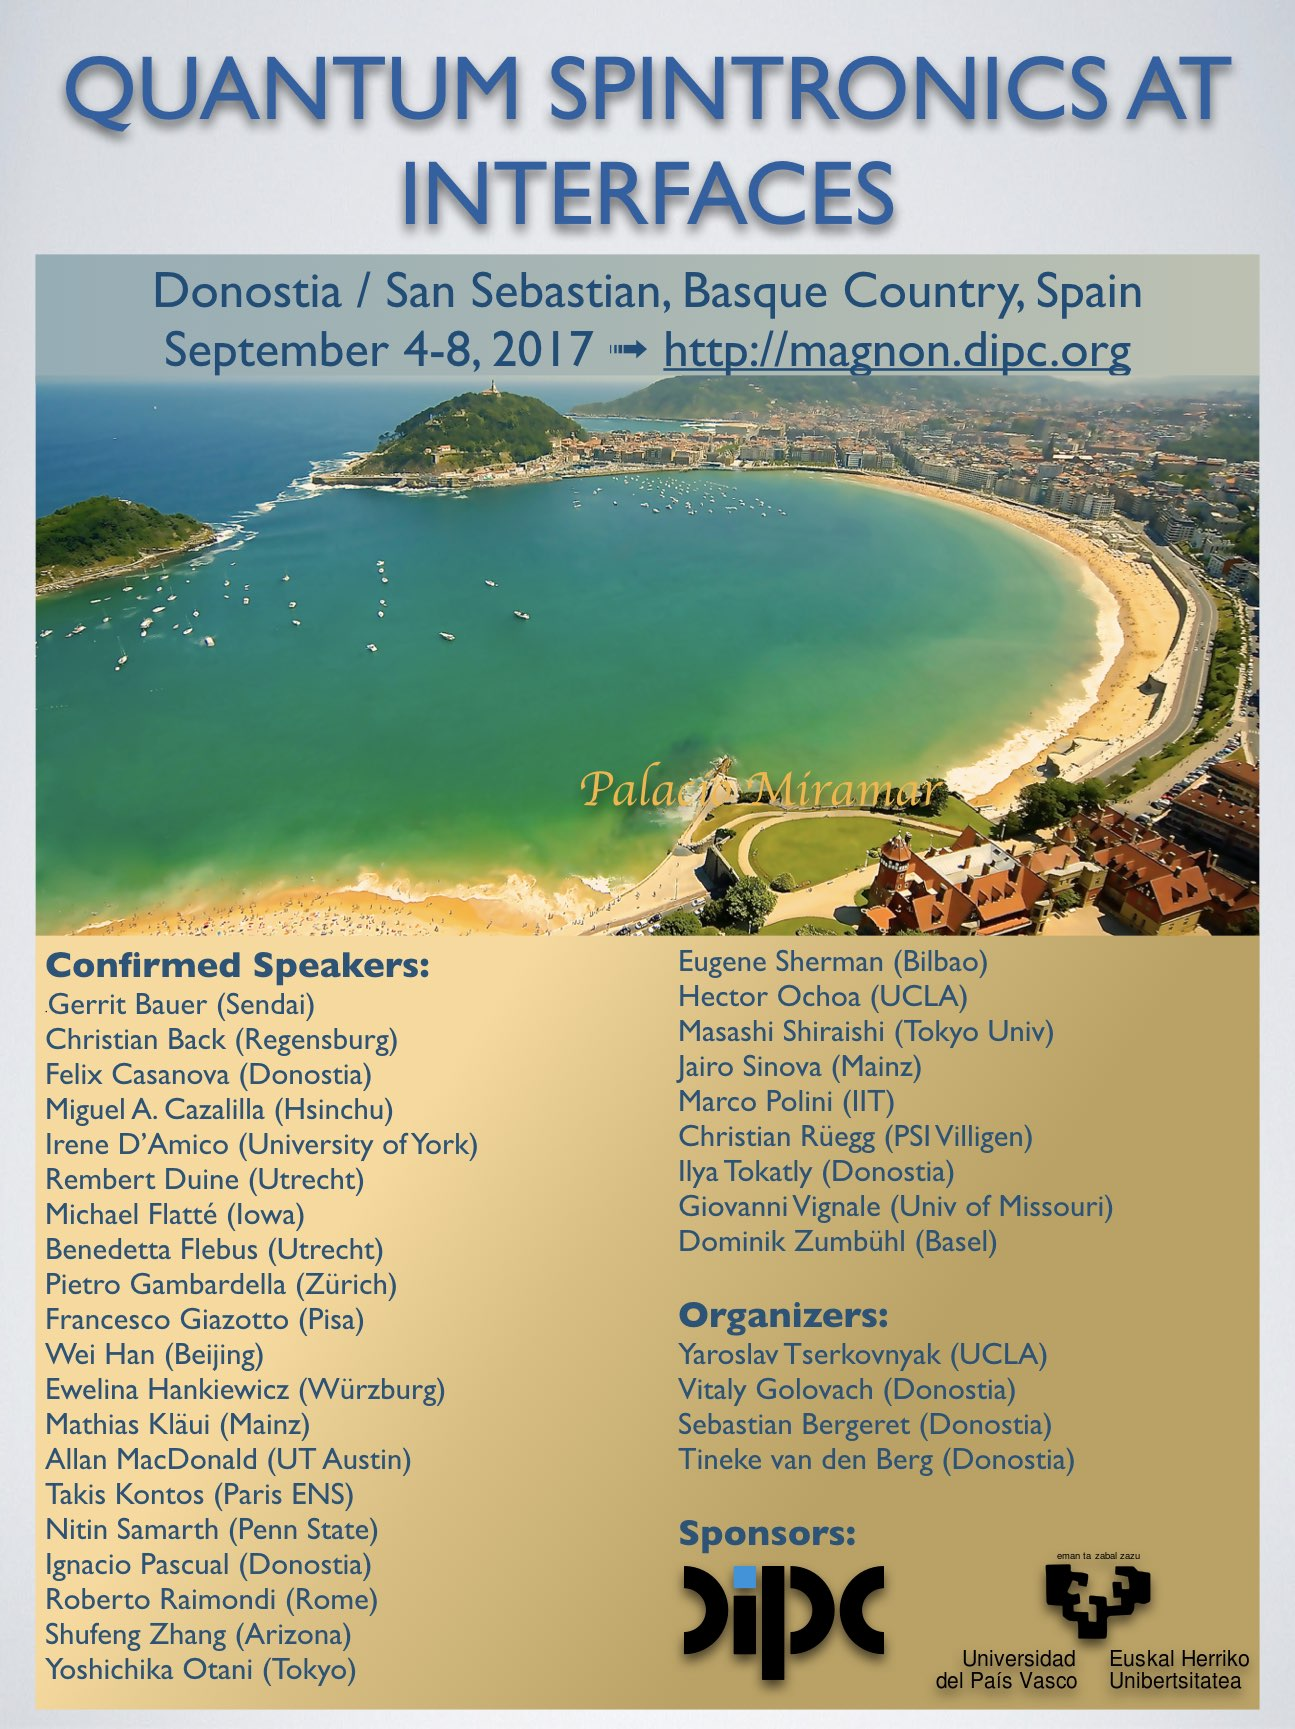 Quantum Spintronics at Interfaces, Donostia / San Sebastian, September 4-8, 2017